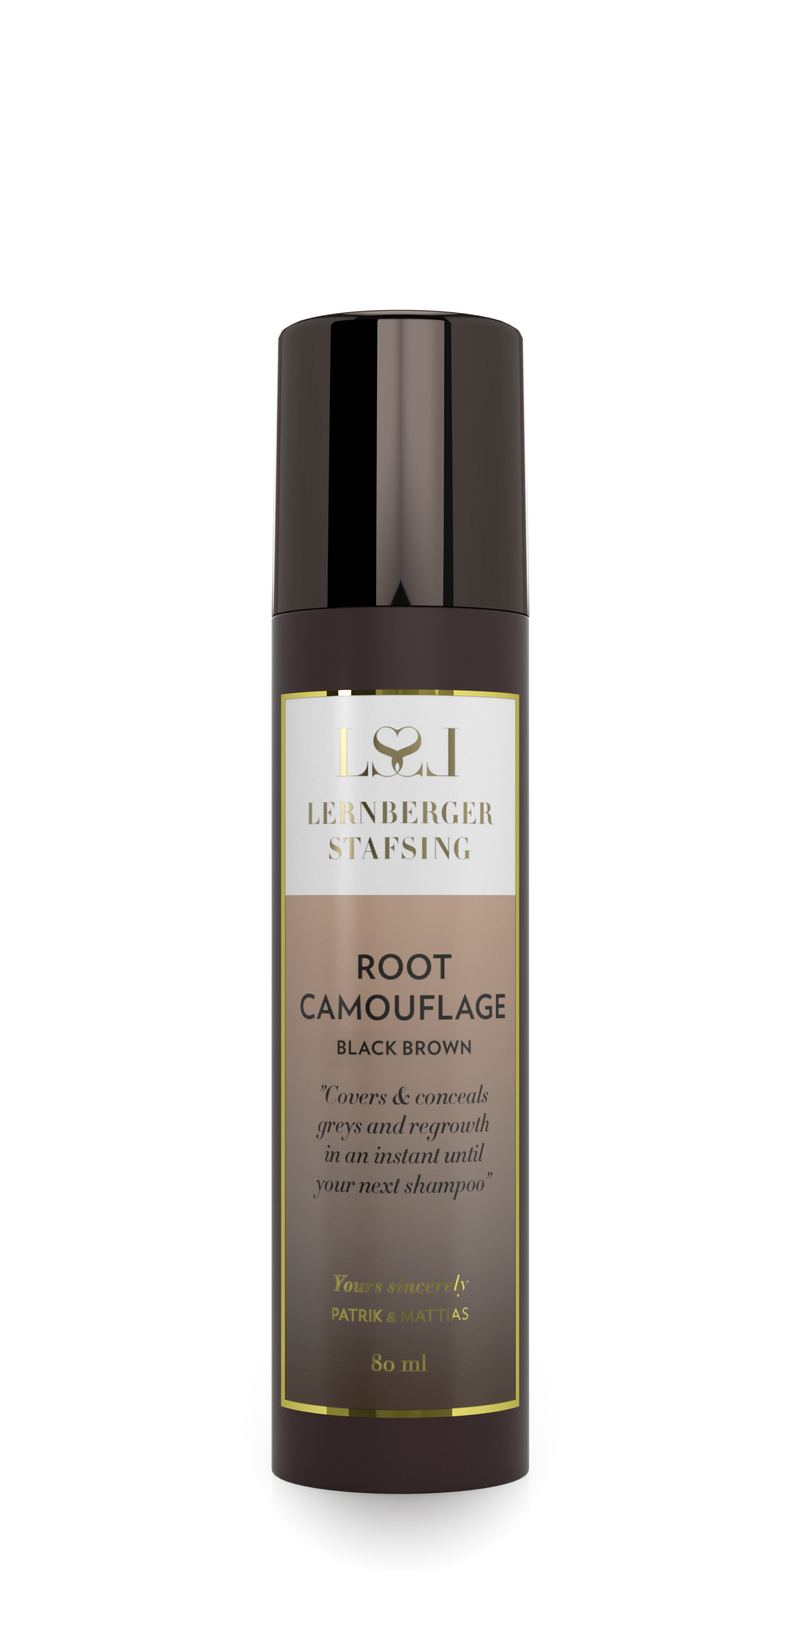 Root camouflage black brown